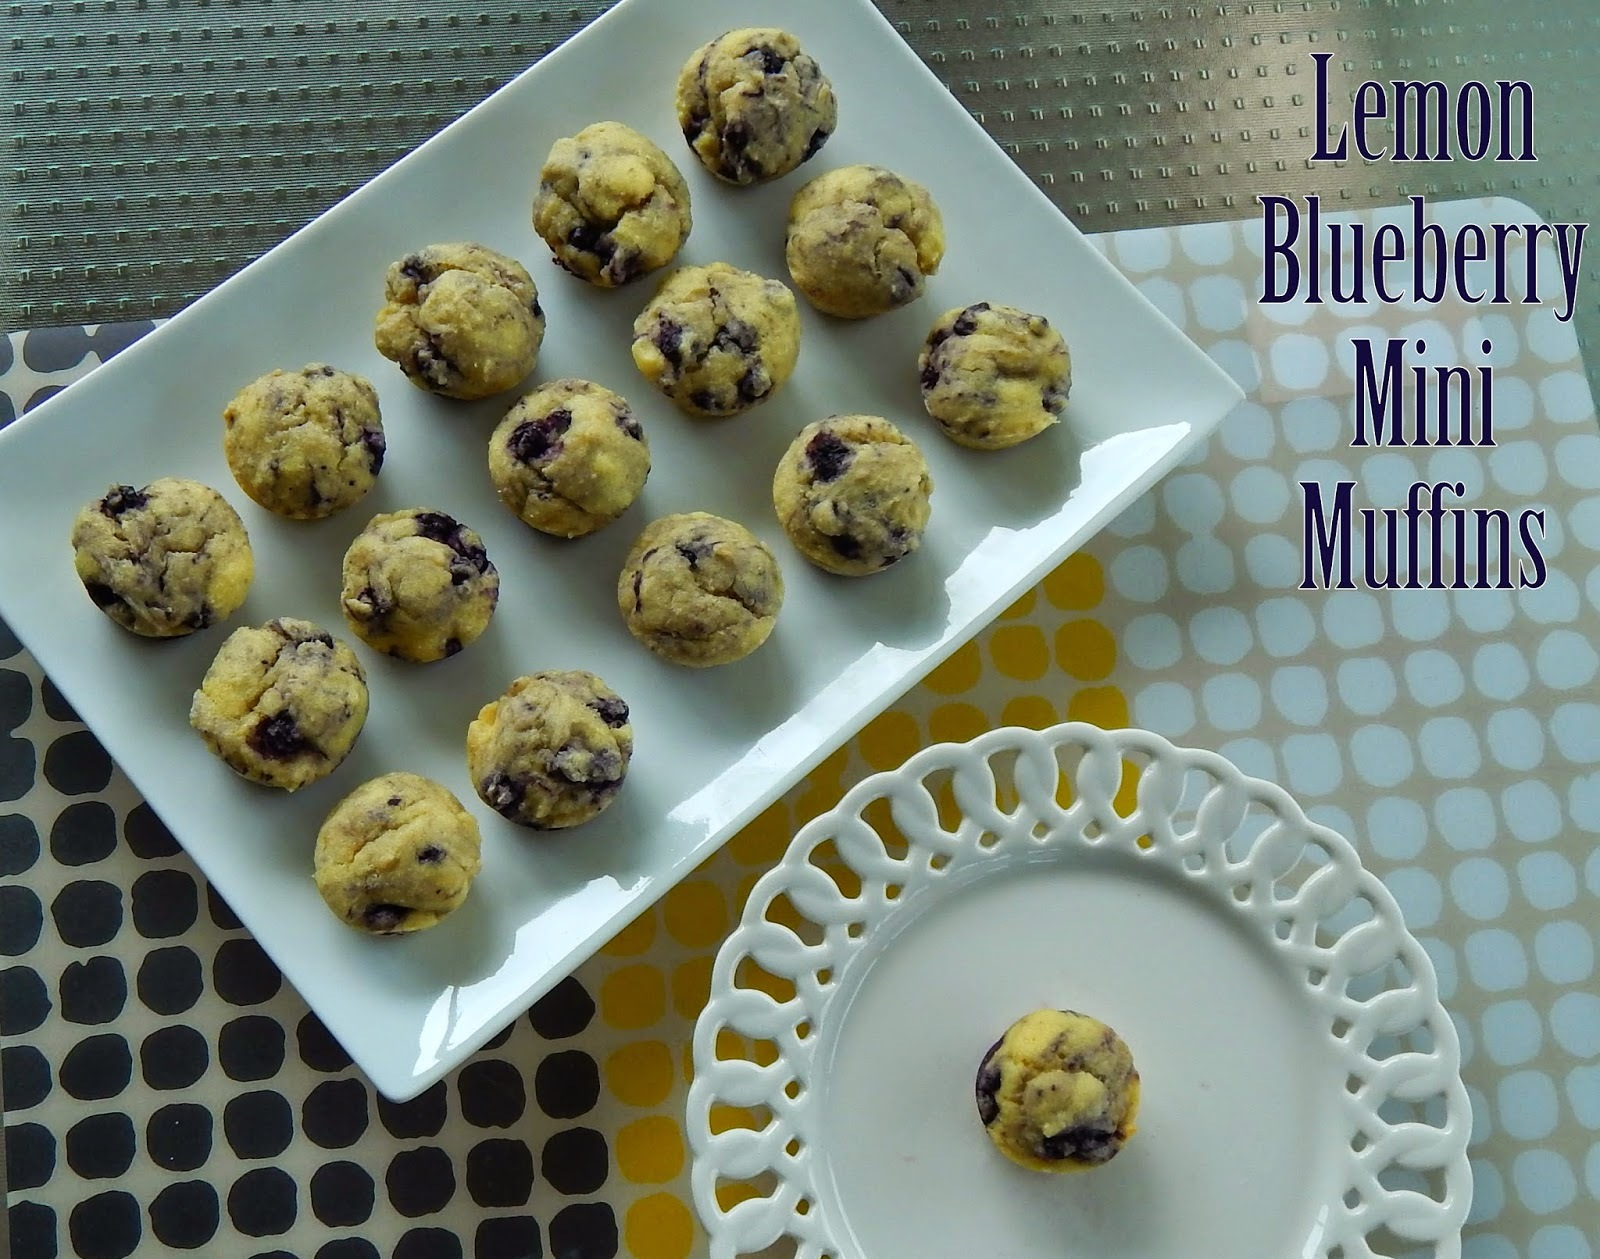 Lemon Blueberry Mini Muffins